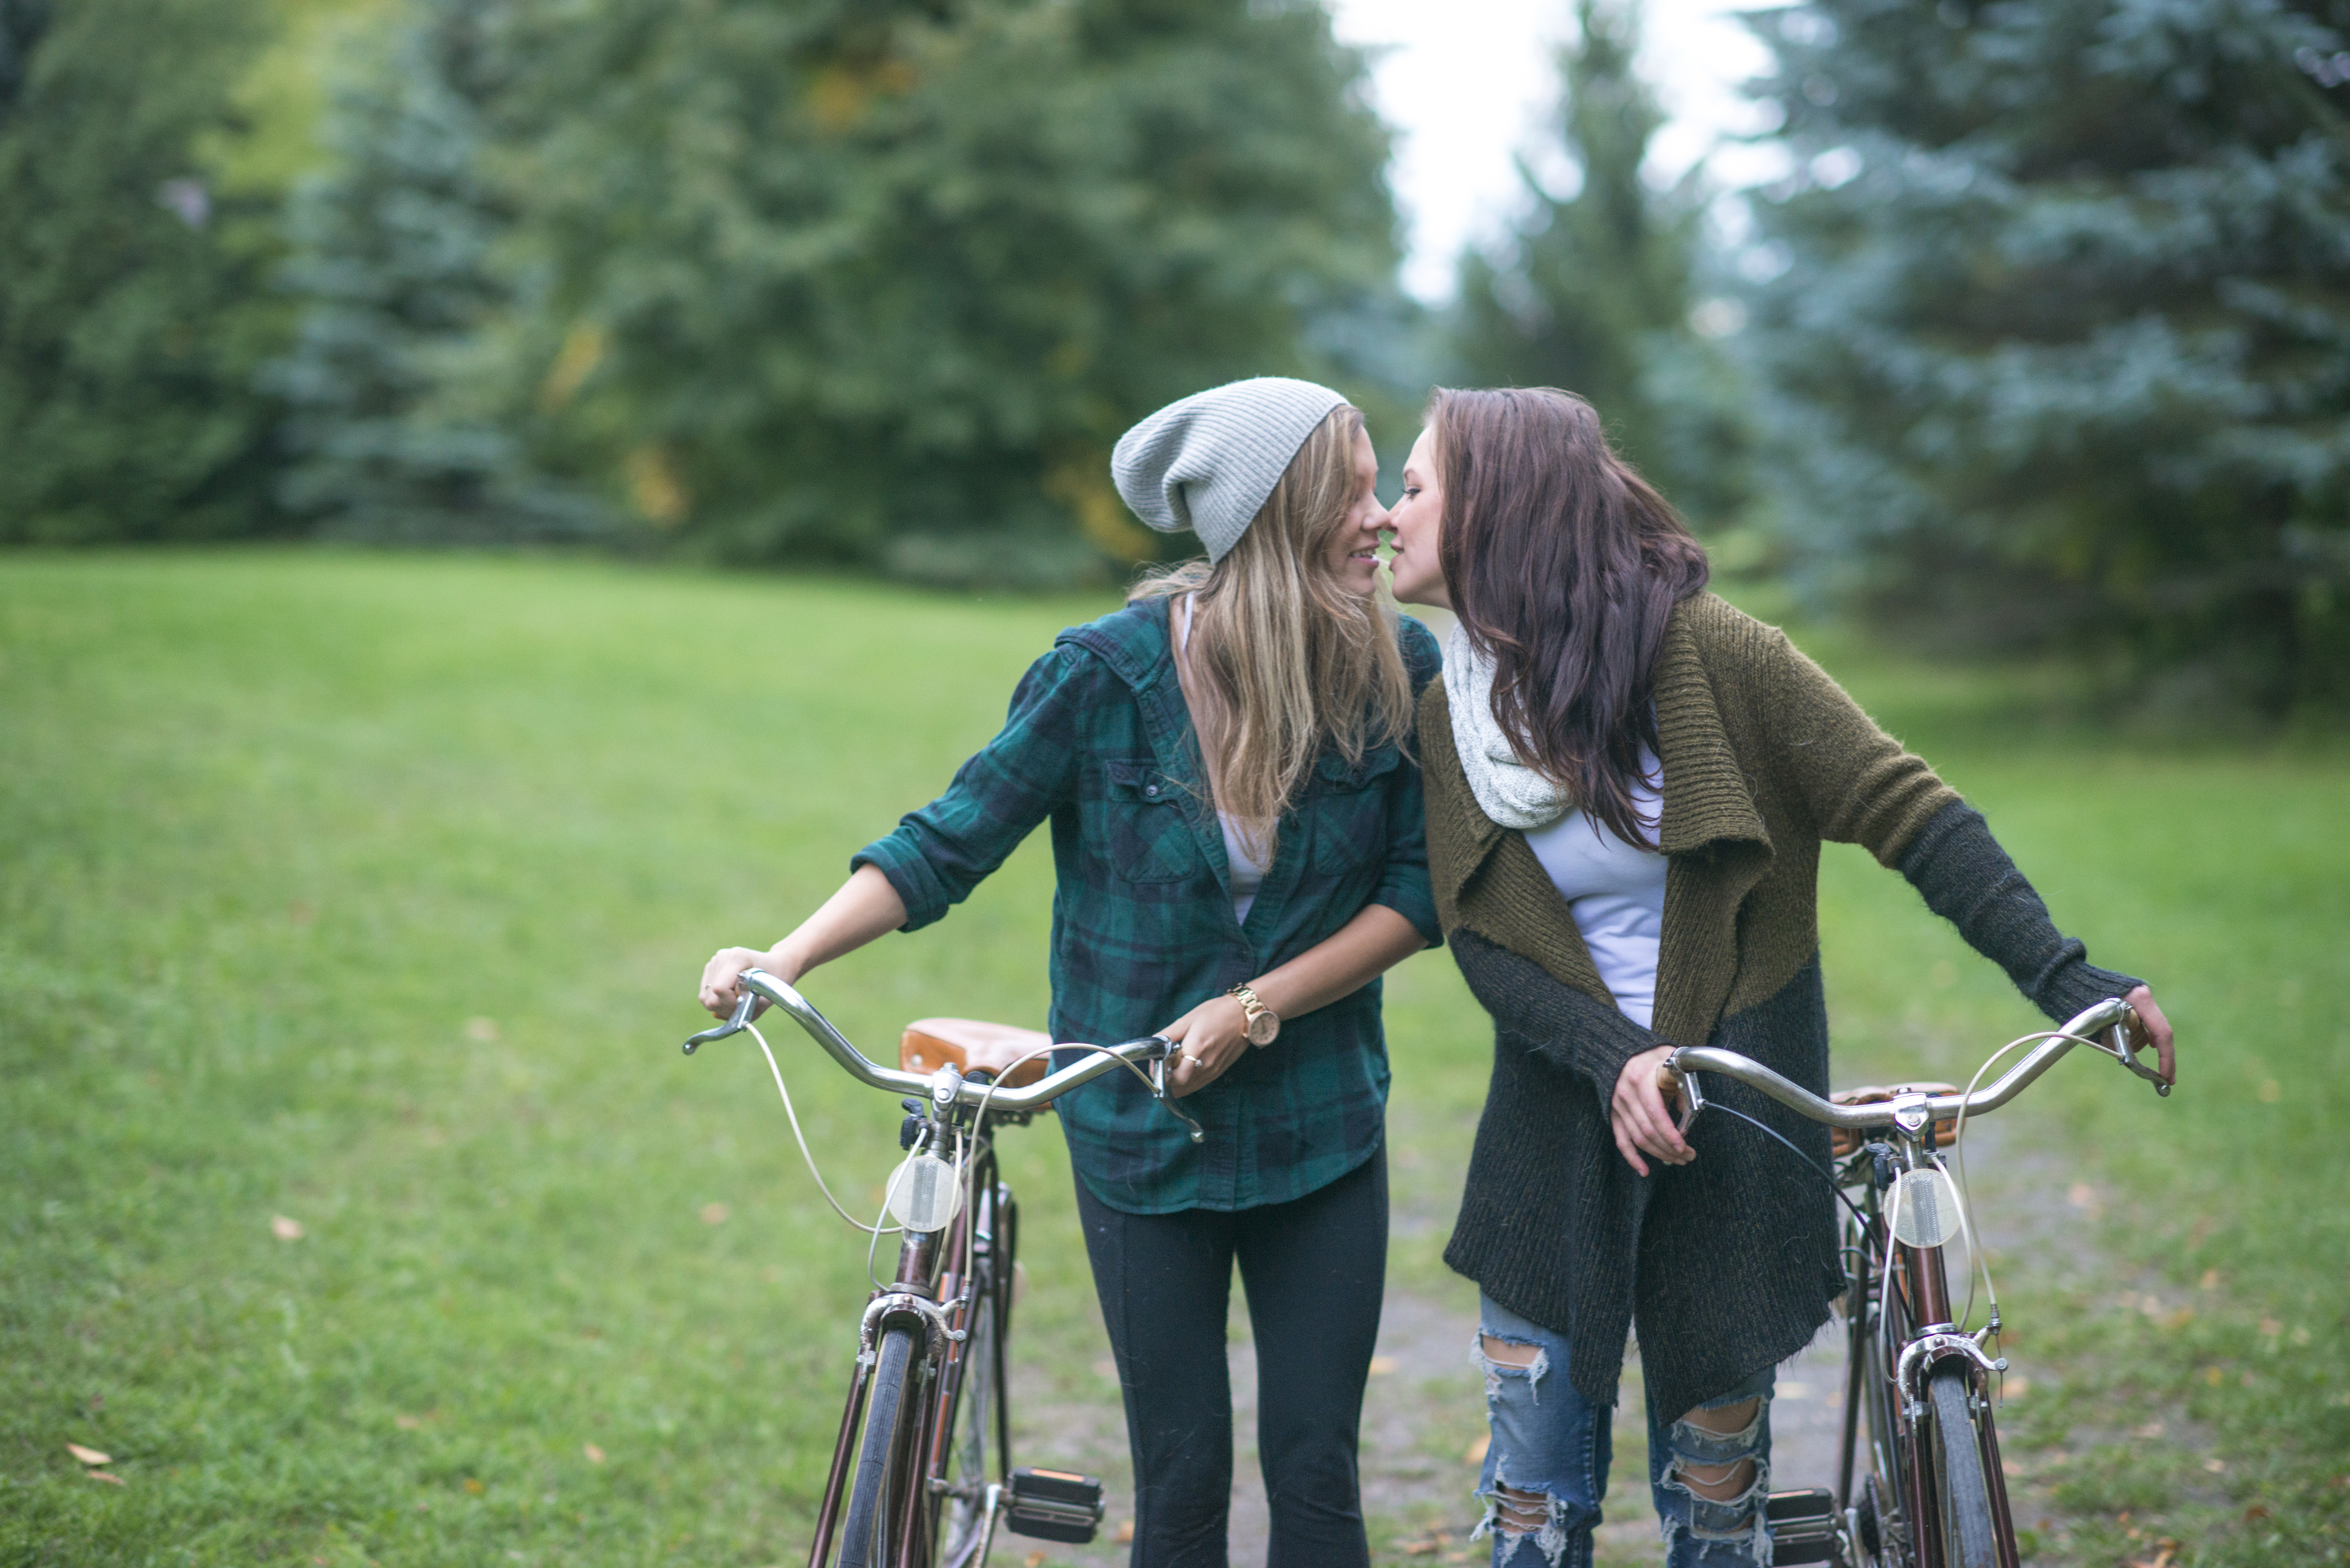 A female lesbian couple is spending time together outside in nature. They are kissing before going on a bike ride.